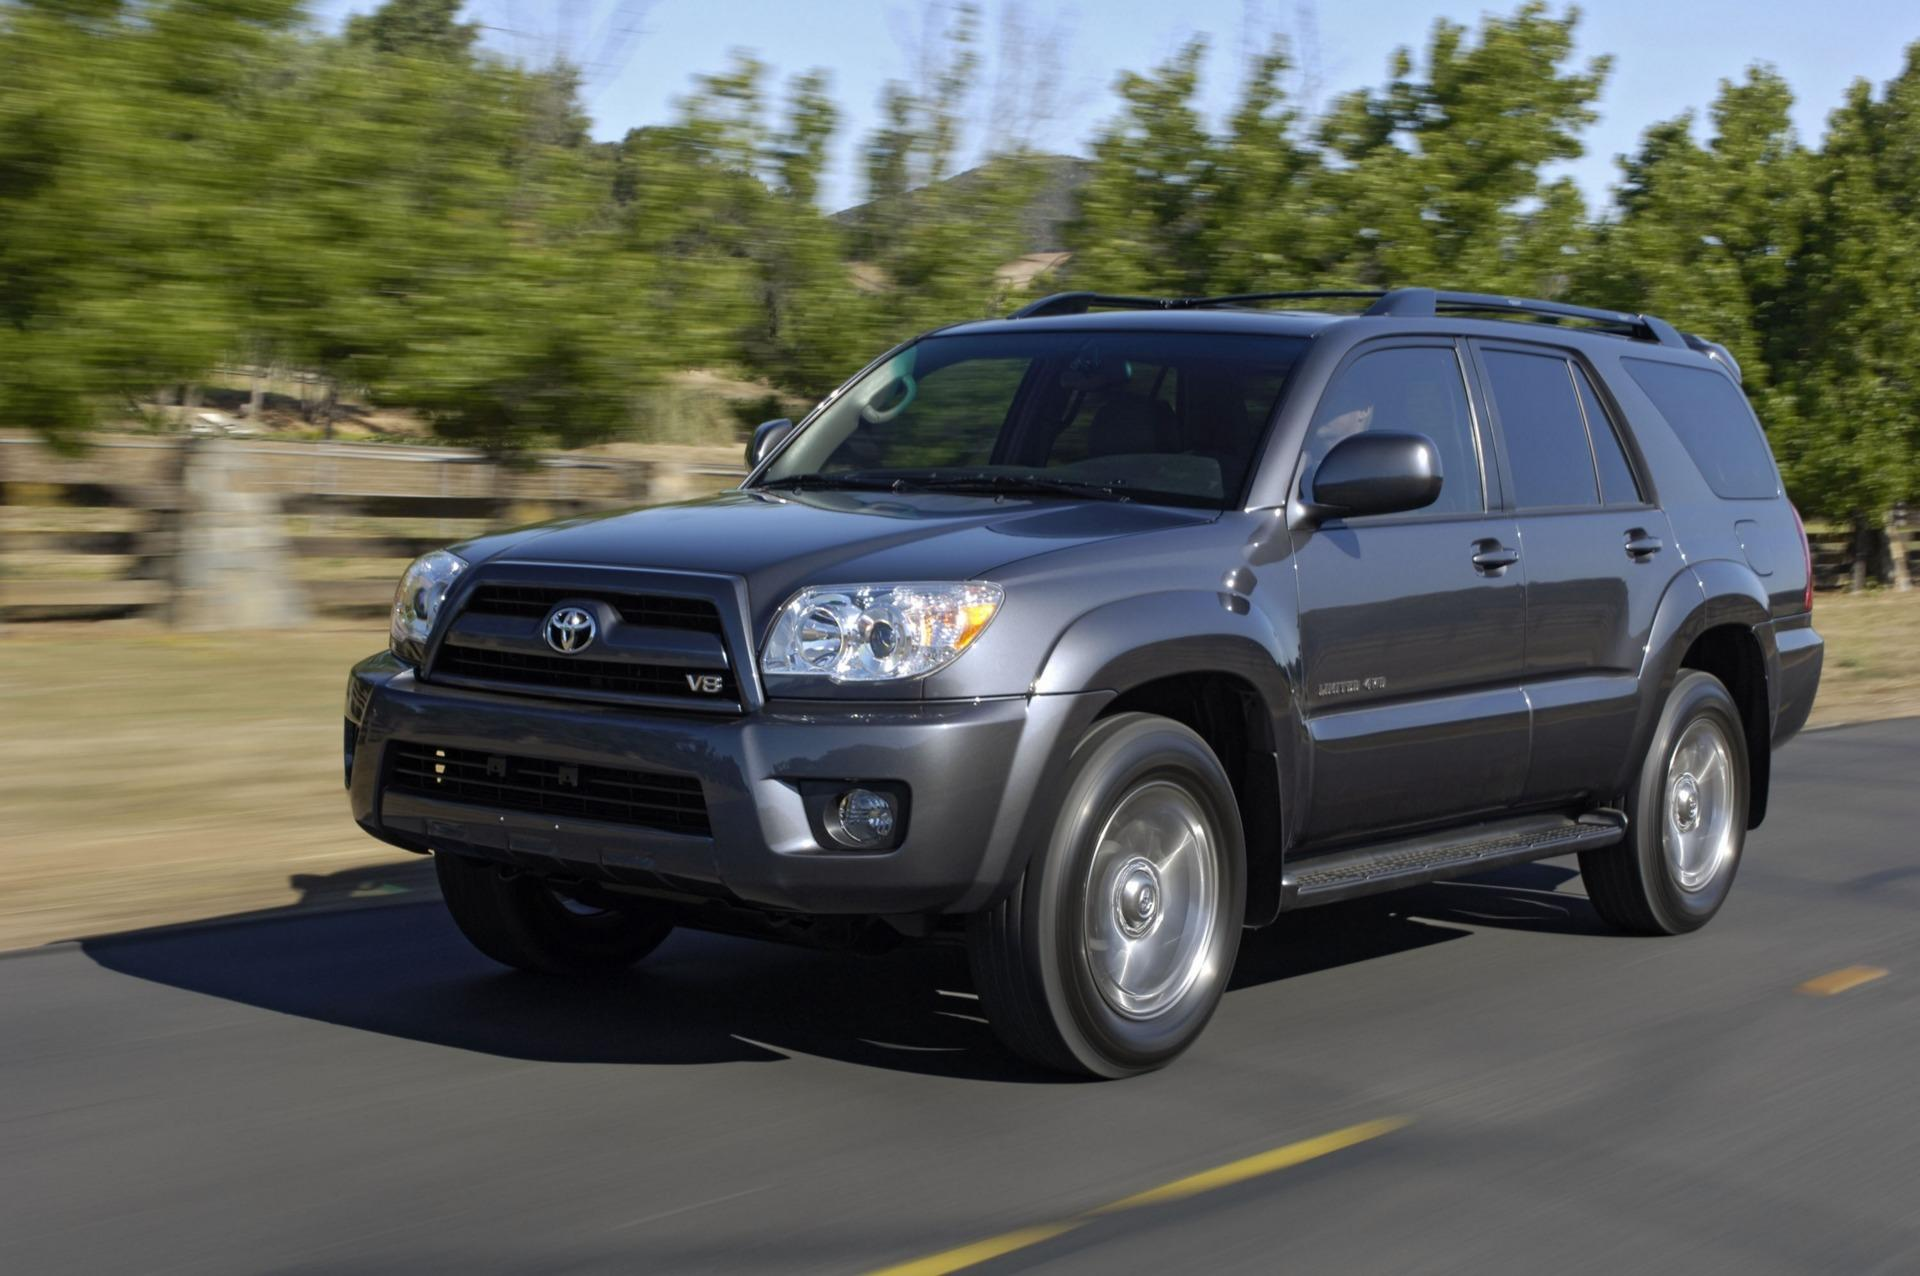 2009 toyota 4runner. Black Bedroom Furniture Sets. Home Design Ideas